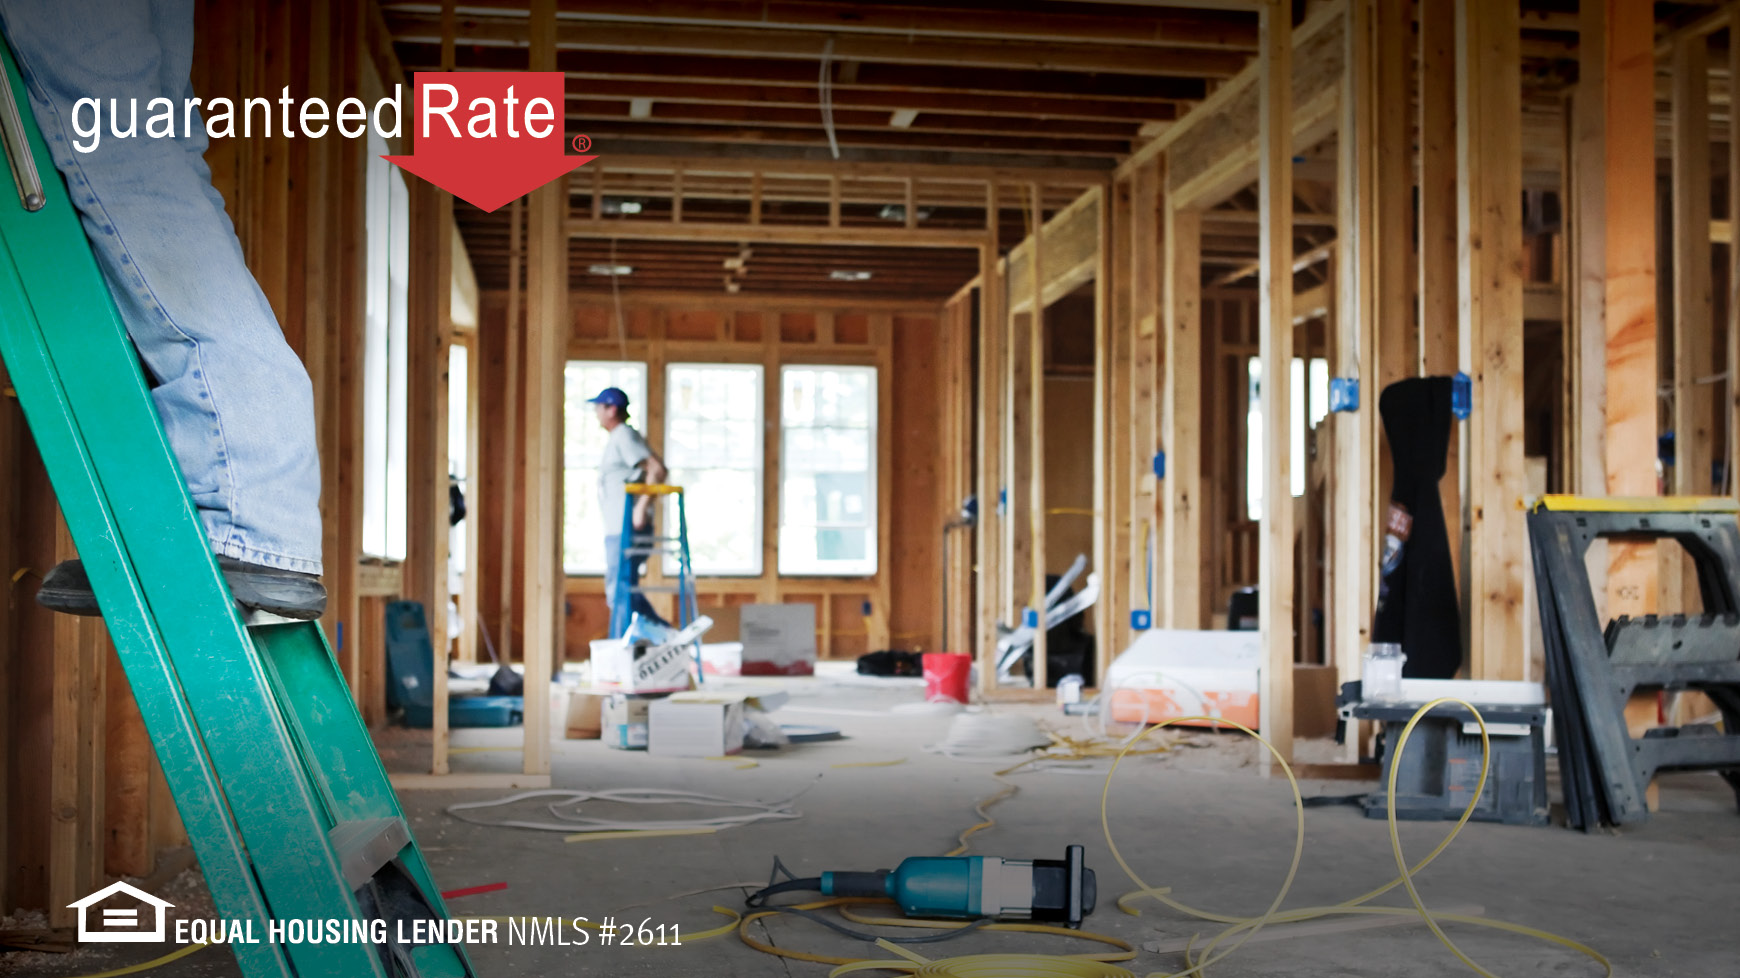 Low housing inventory? Reno to the rescue